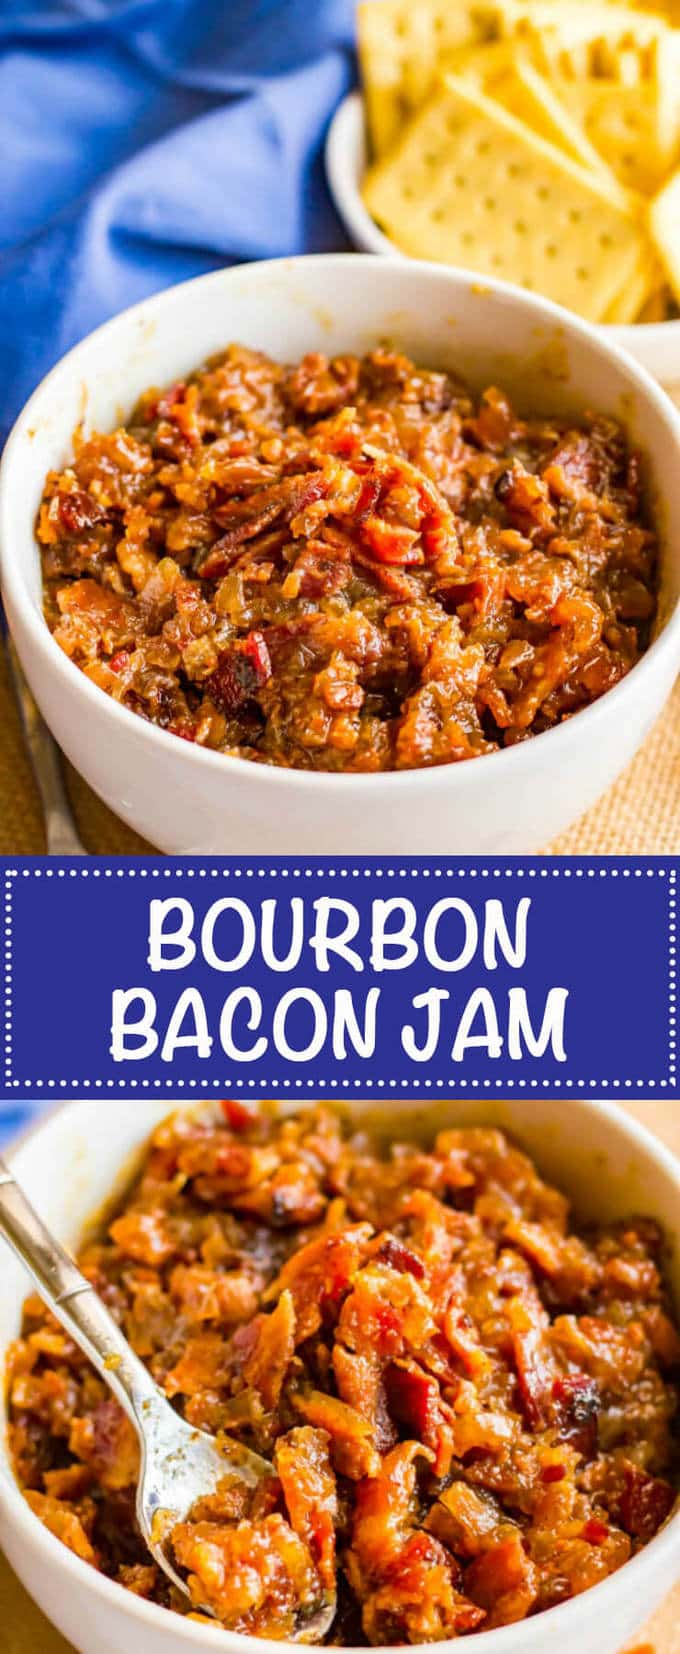 Bourbon bacon jam is a salty-sweet spread with big bacon flavor that's perfect for an appetizer with some cheese and crackers or on burgers or sandwiches or in salad dressings or soups! | www.familyfoodonthetable.com